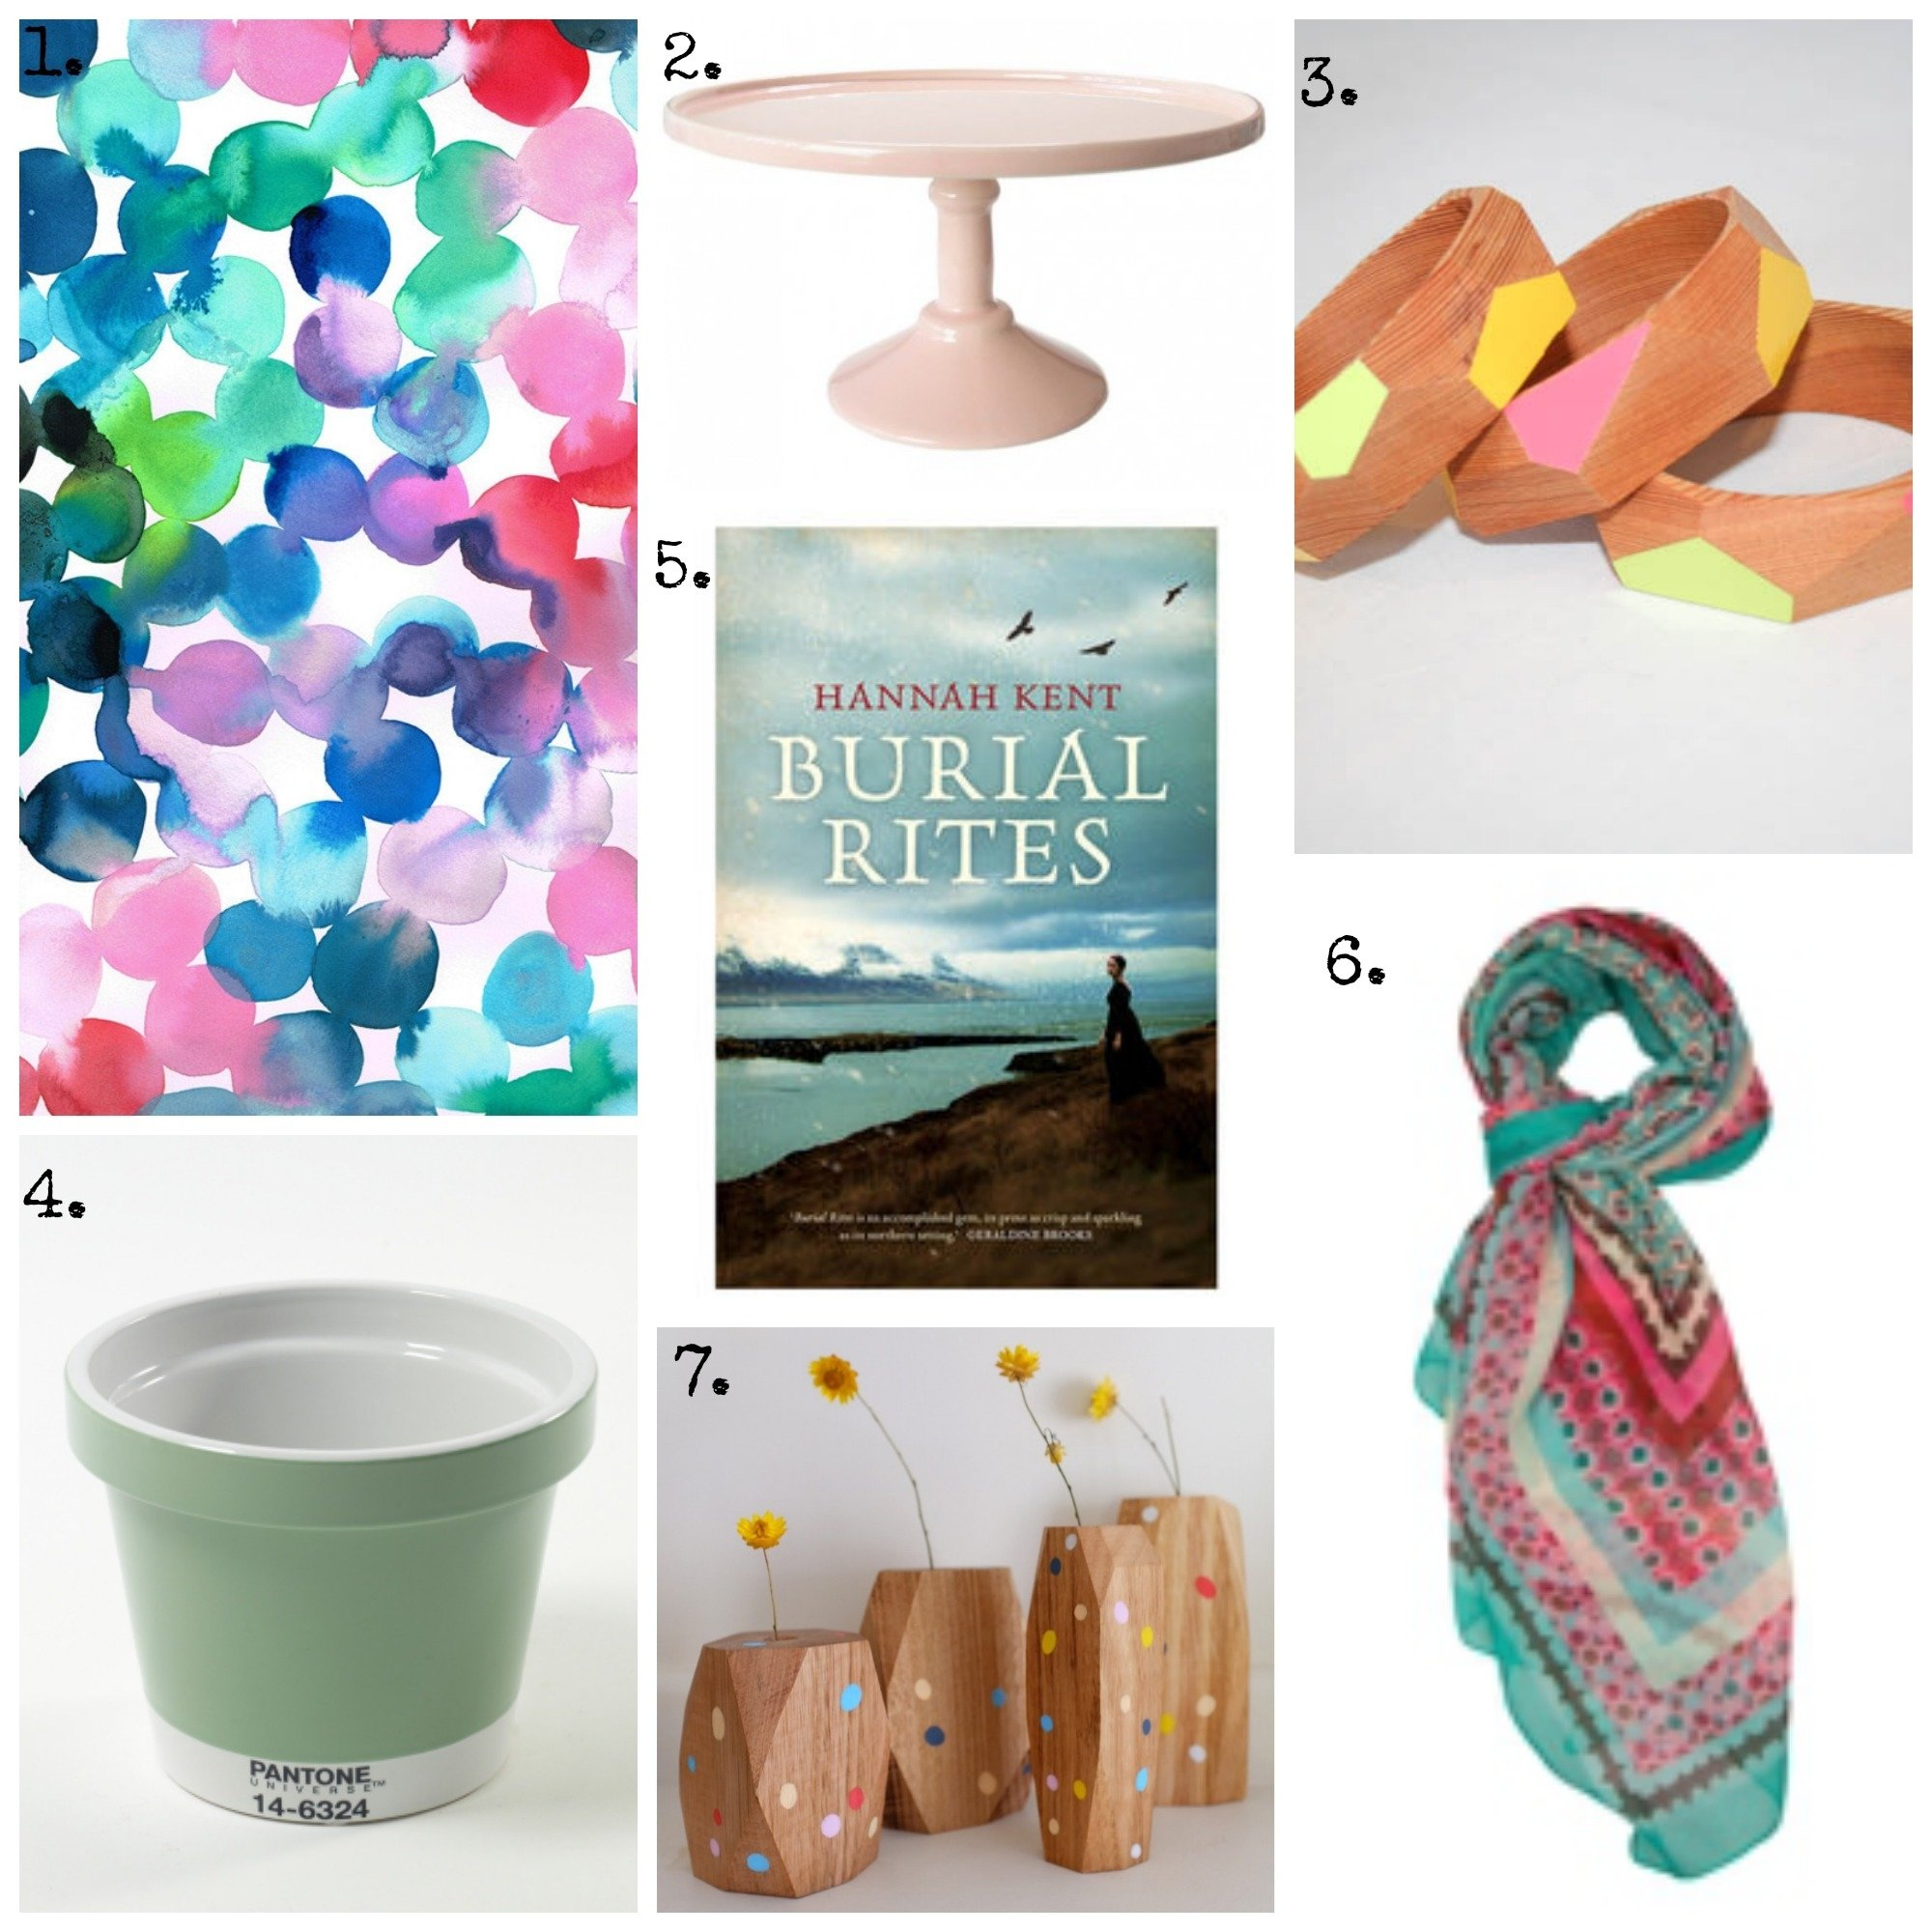 10 Great 2013 Gift Ideas For Women the top 7 gorgeous gift ideas for women style shenanigans 8